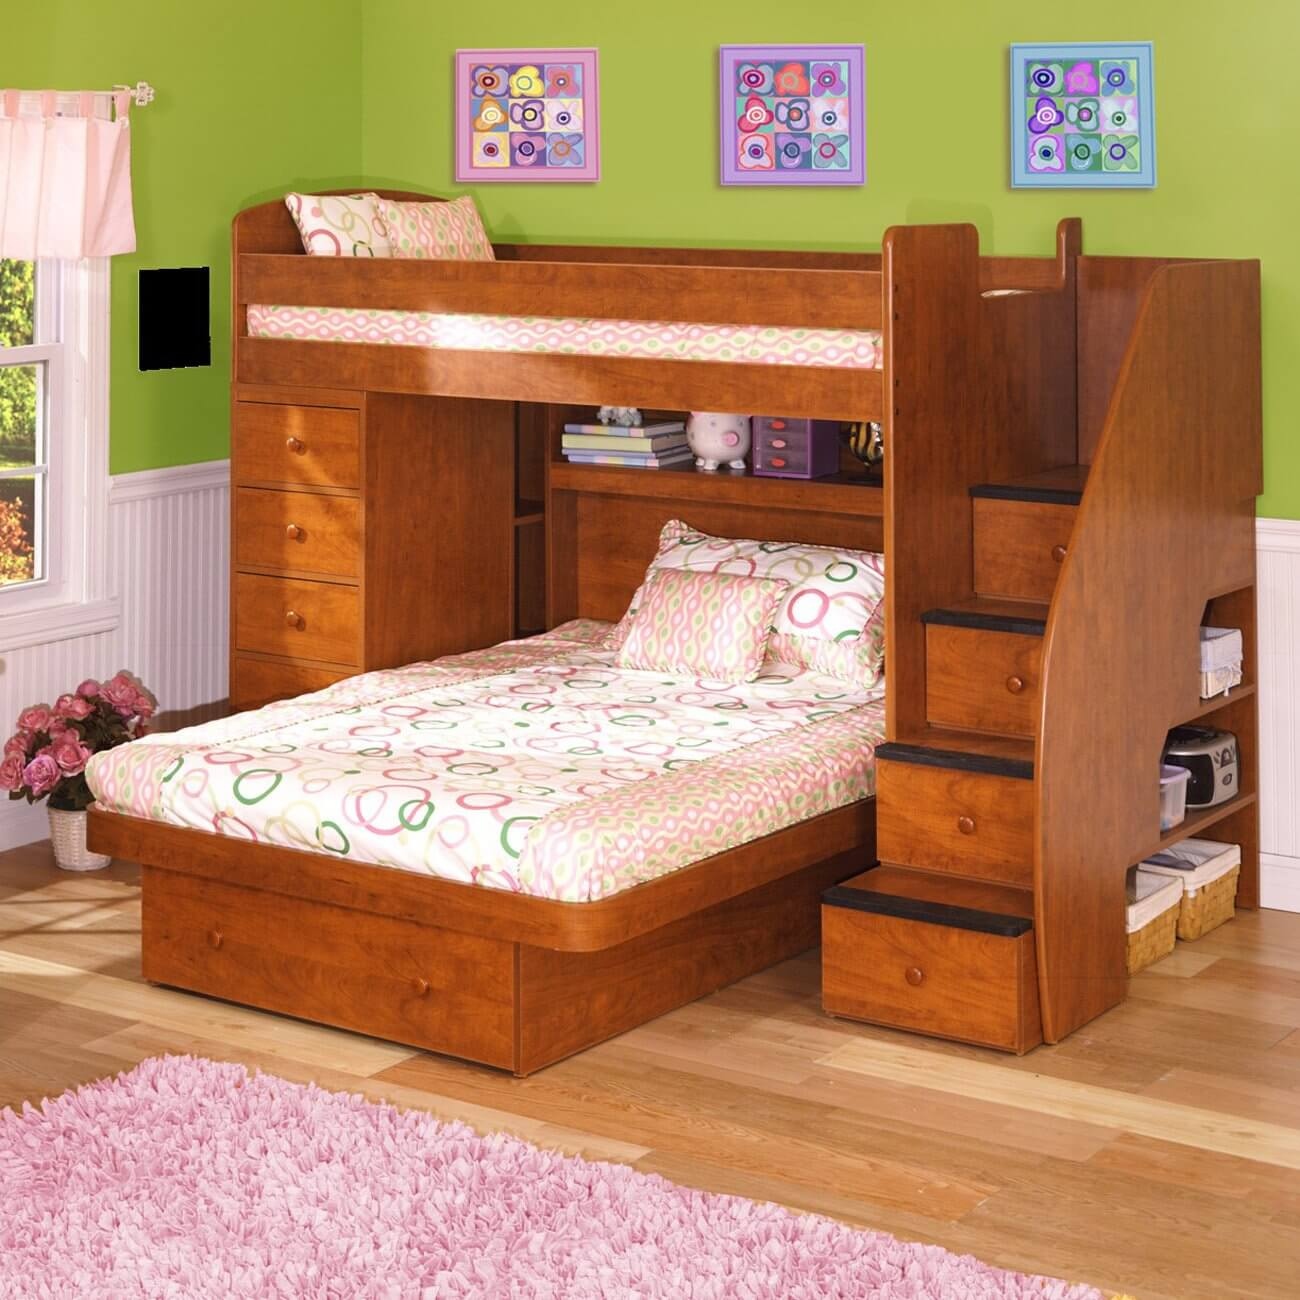 This engineered wood L-shaped bunk is a twin over full size bed. The lower bed is not on wheels. You have the choice of finishes (including white).